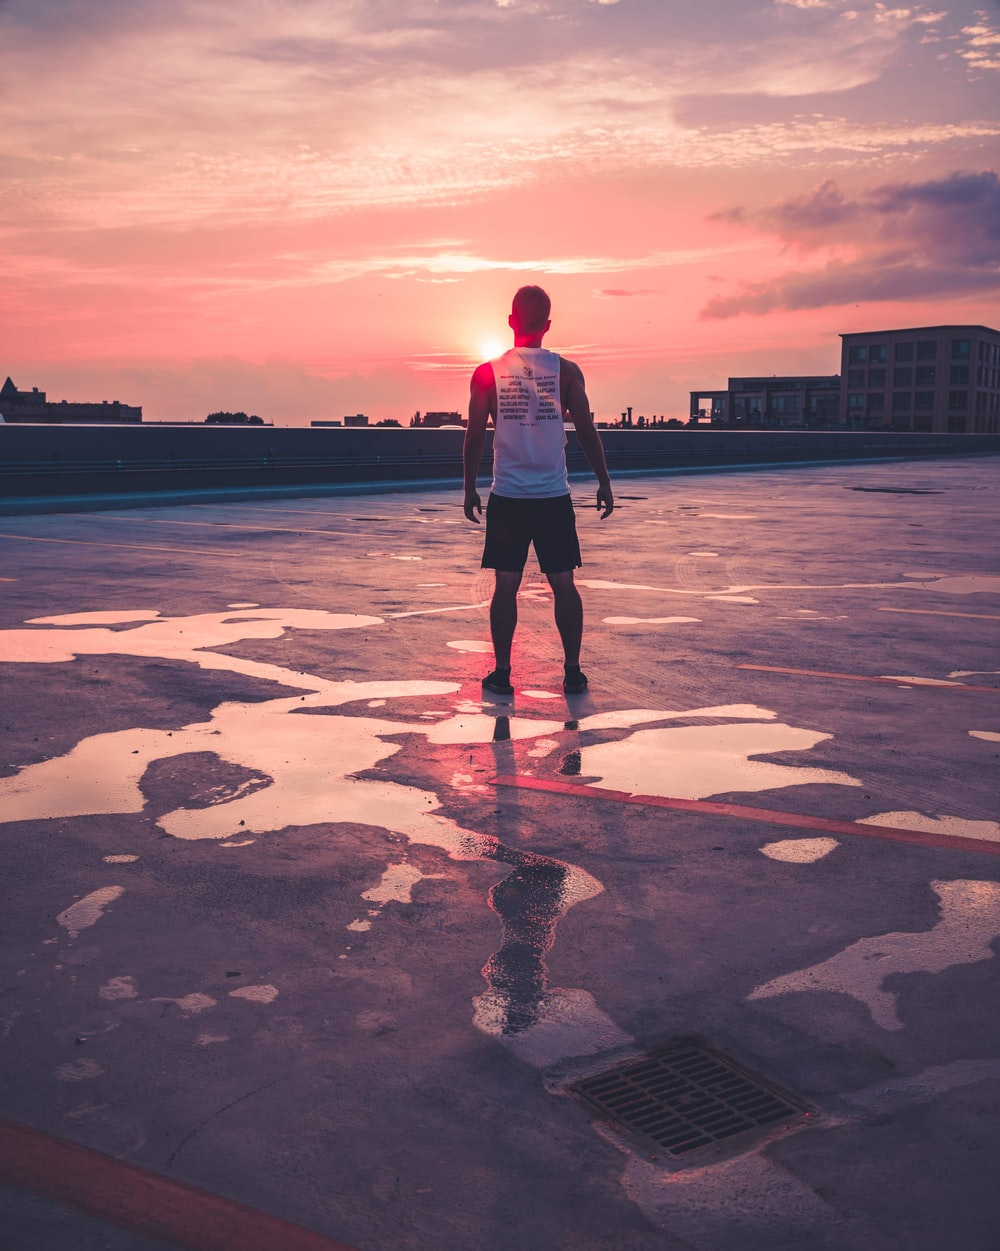 man standing above gray concrete area facing large buildings at golden hour